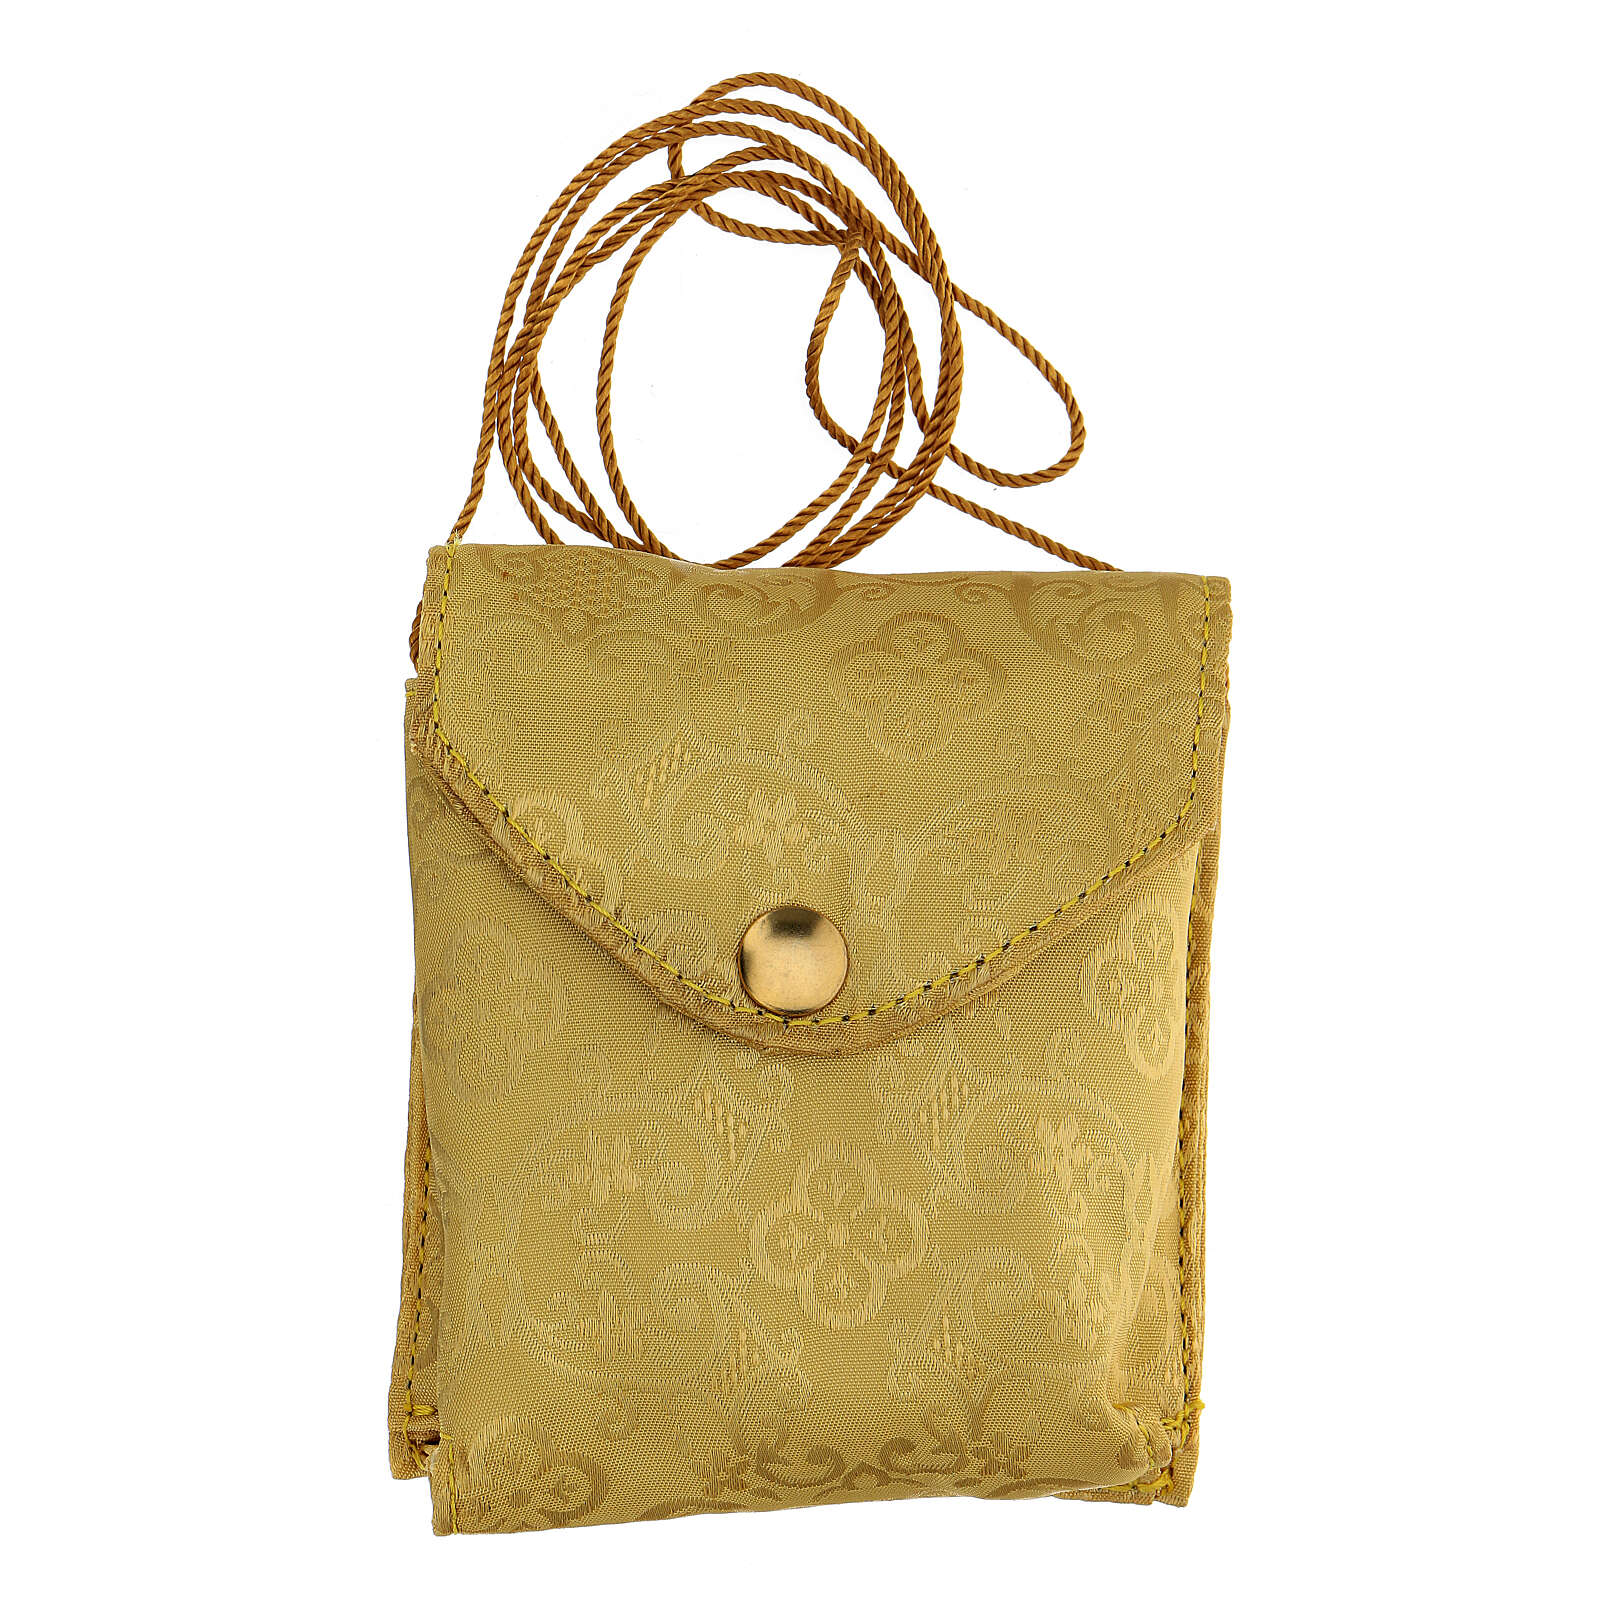 Golden Jacquard fabric burse with string and 3 in pyx 3